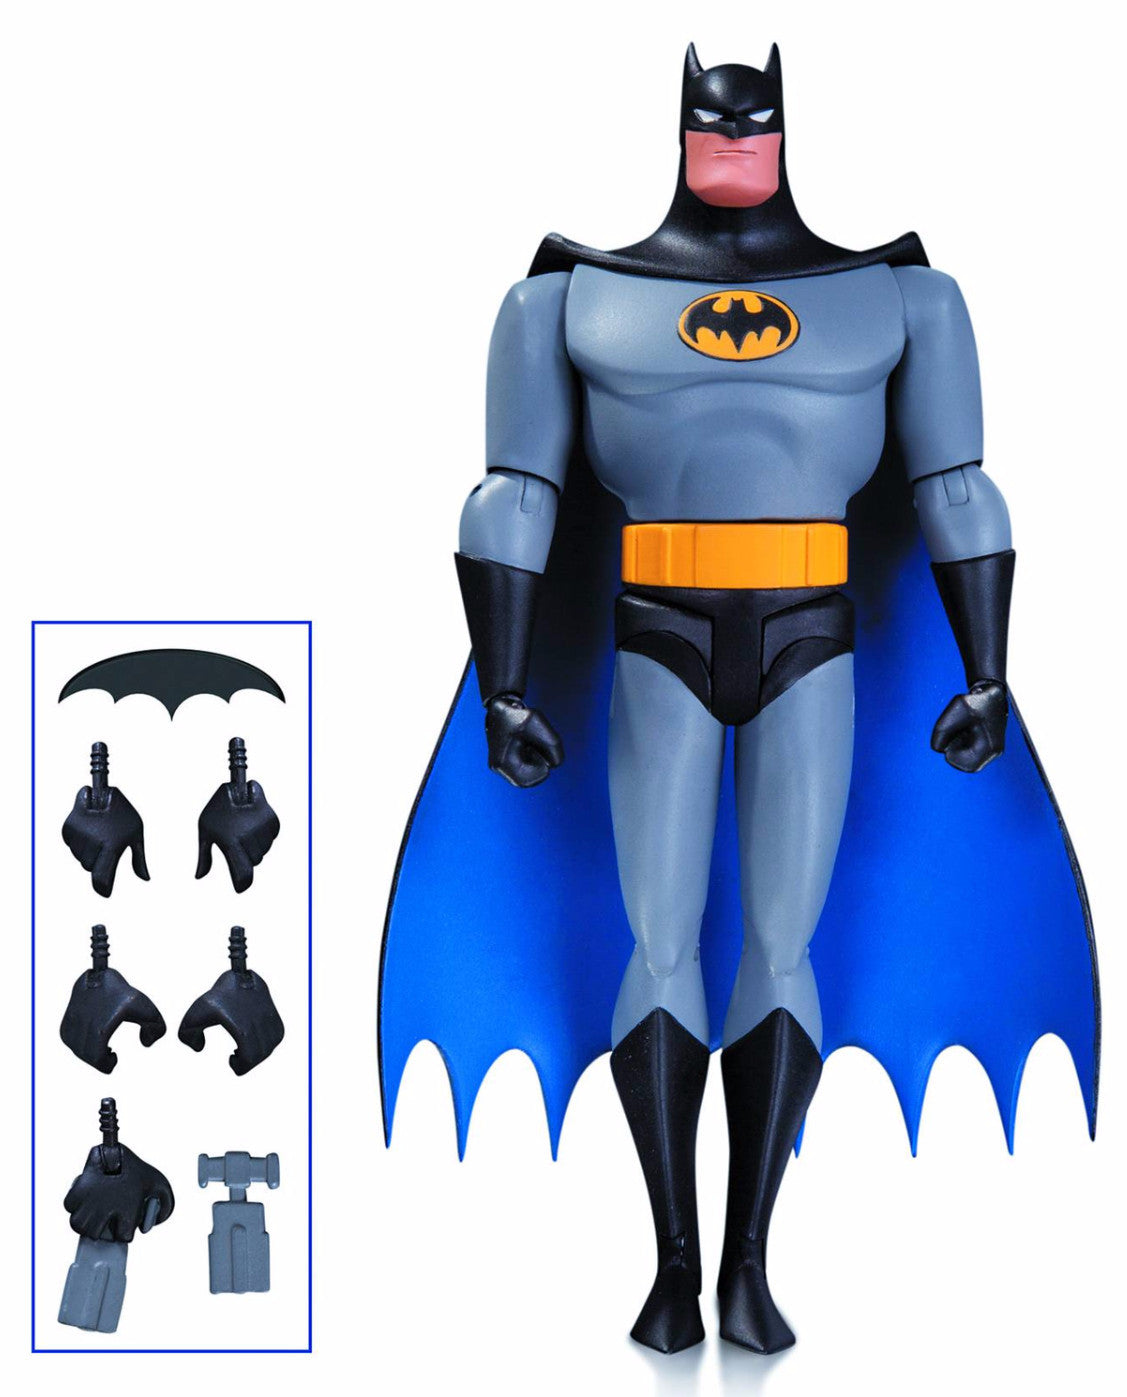 Batman Animated Series: The New Batman Adventures Batman Action Figure-DC Collectibles- www.superherotoystore.com-Action Figure